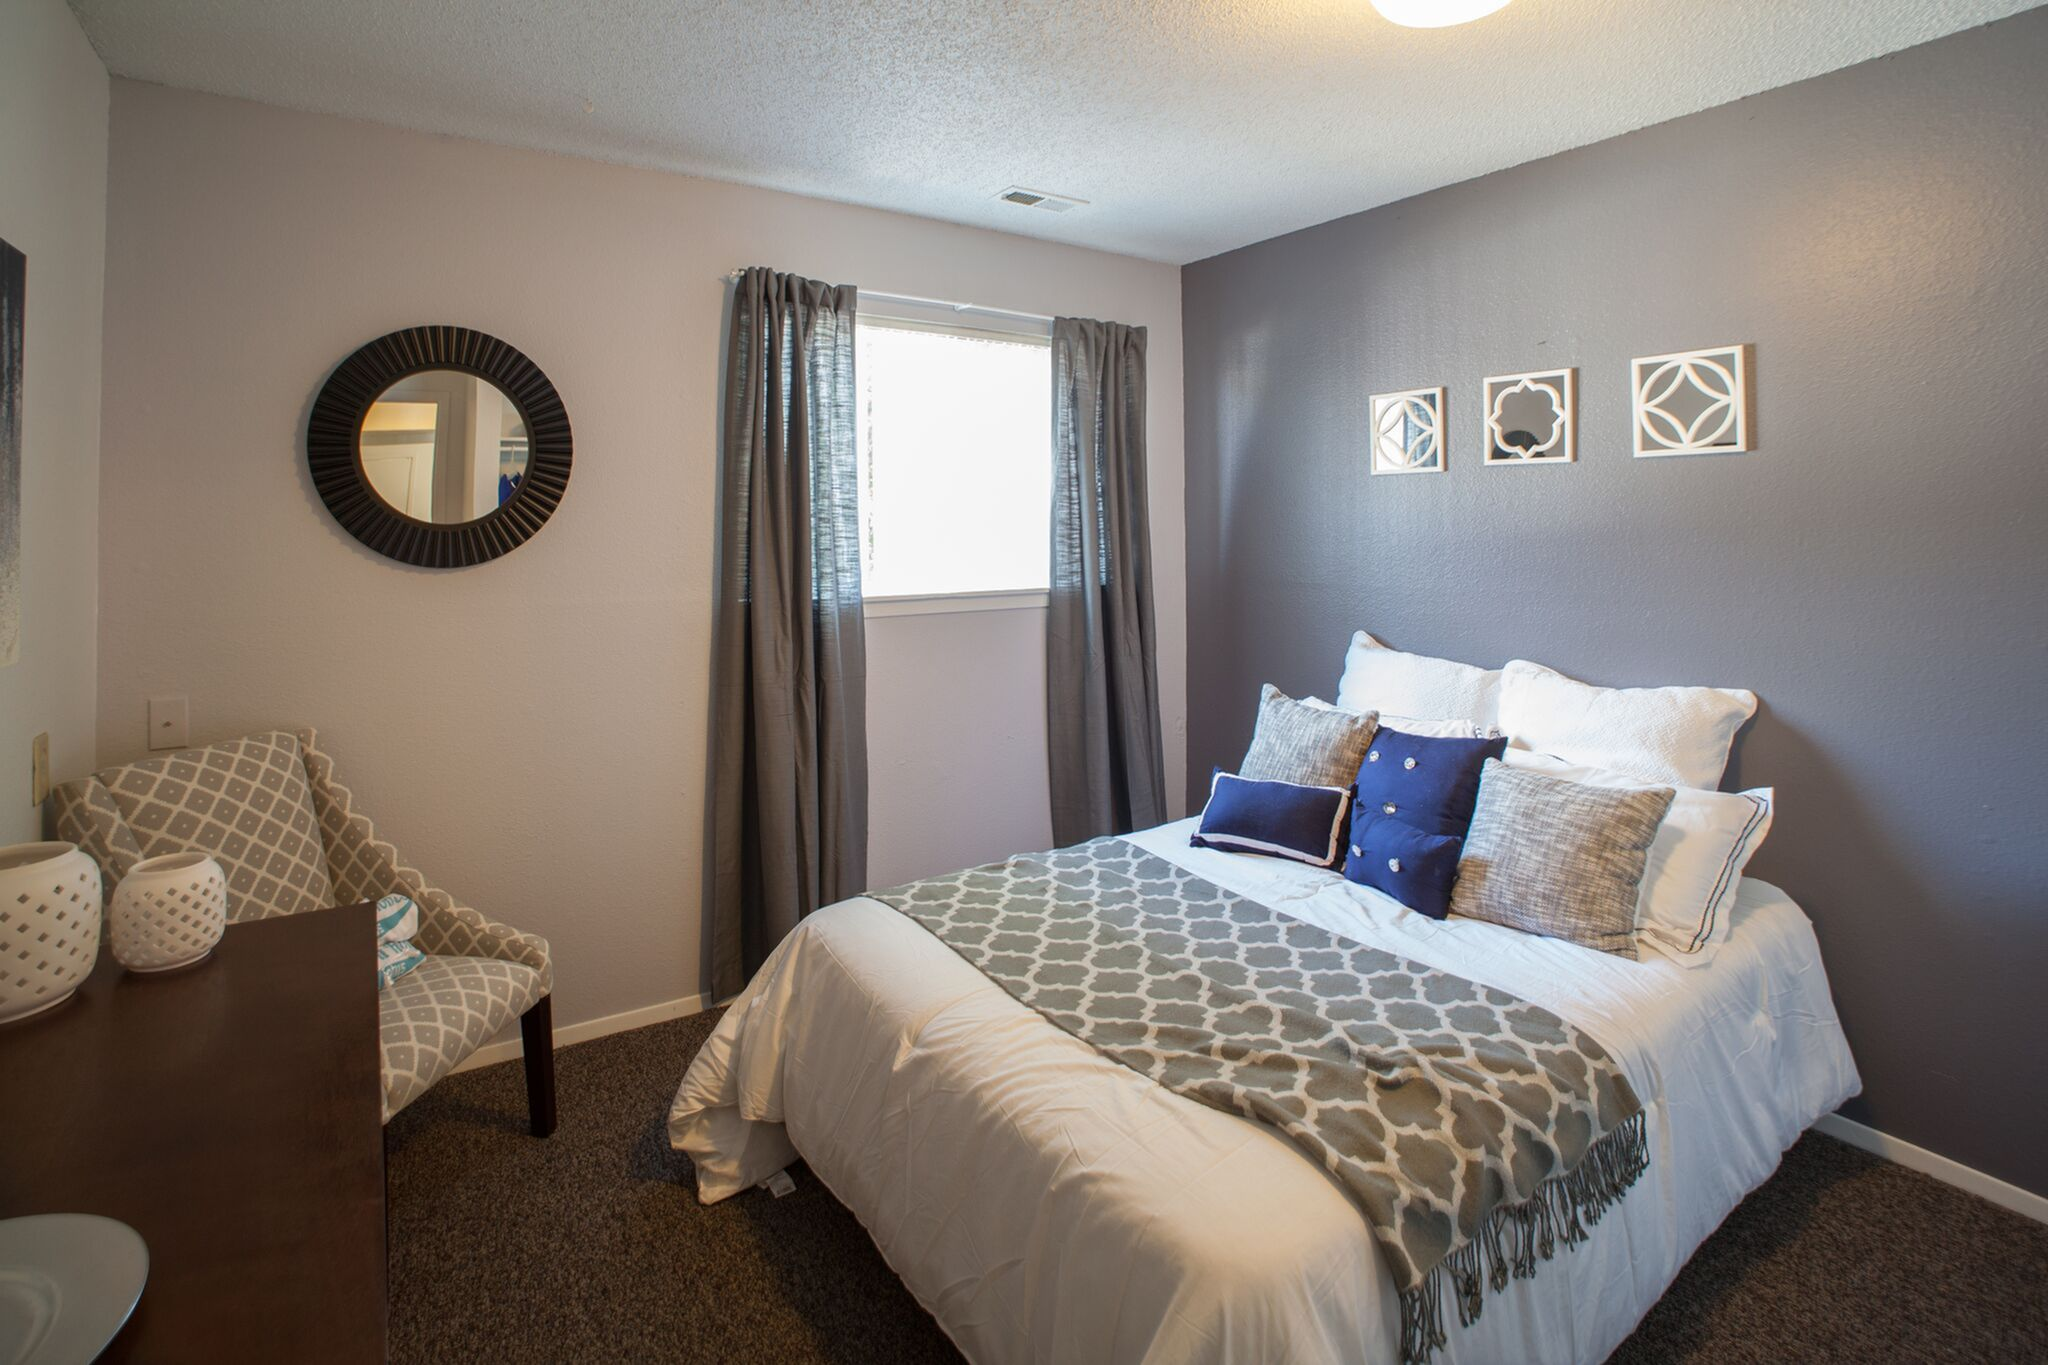 Photos Tour Hawks Pointe A Student Apartment Community In Lawrence Ks Near The University Of Kansas